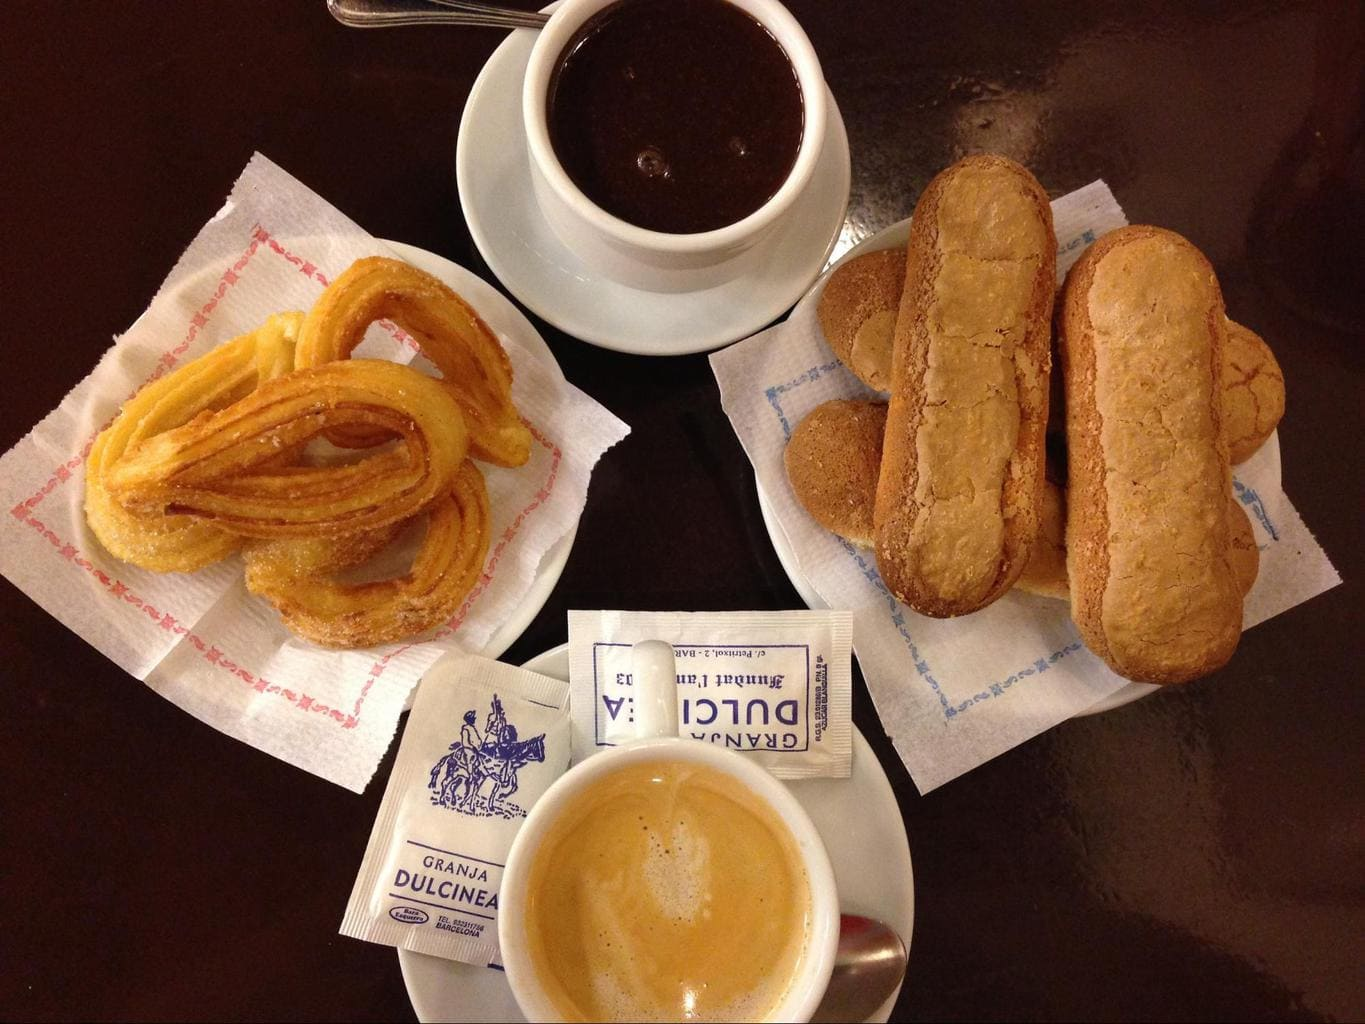 Hot chocolate, churros, coffee and melindros from Granja Dulcinea